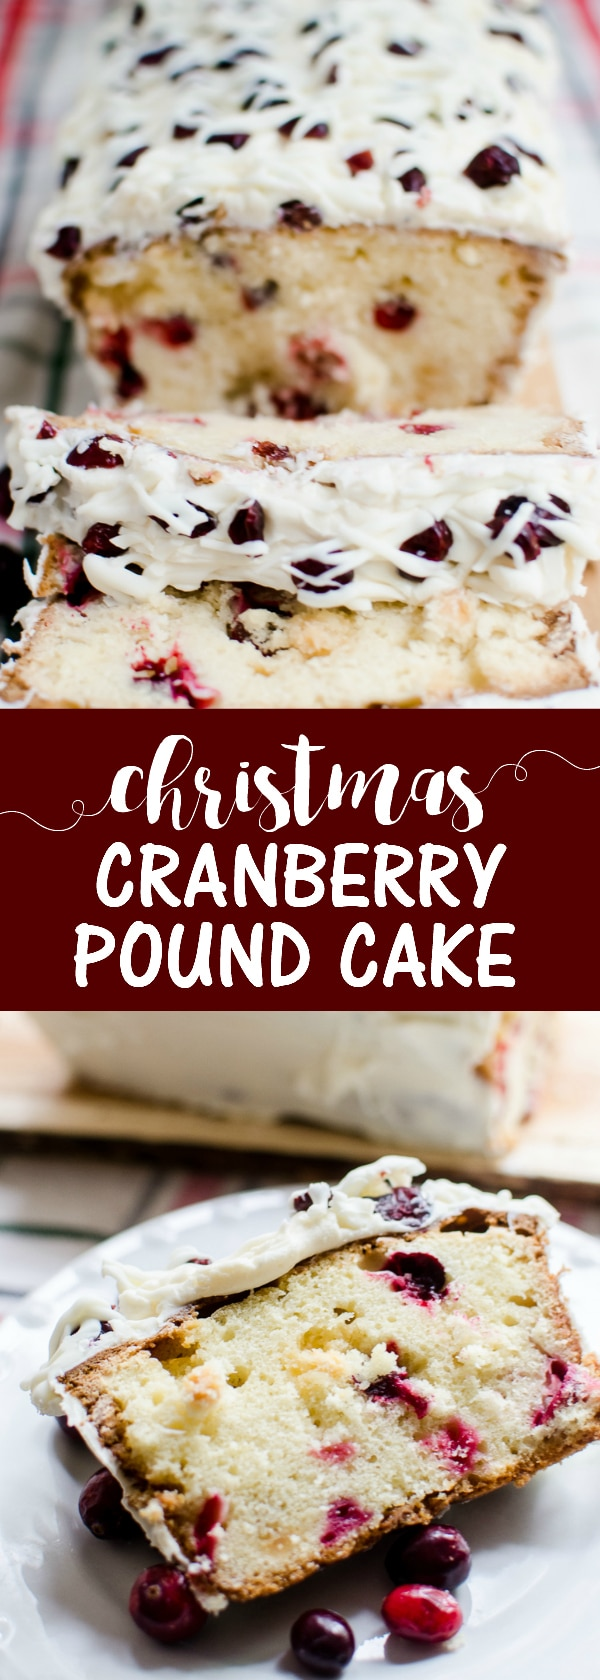 Take your pound cake up to a decadent Christmas Cranberry and White Chocolate Pound Cake!